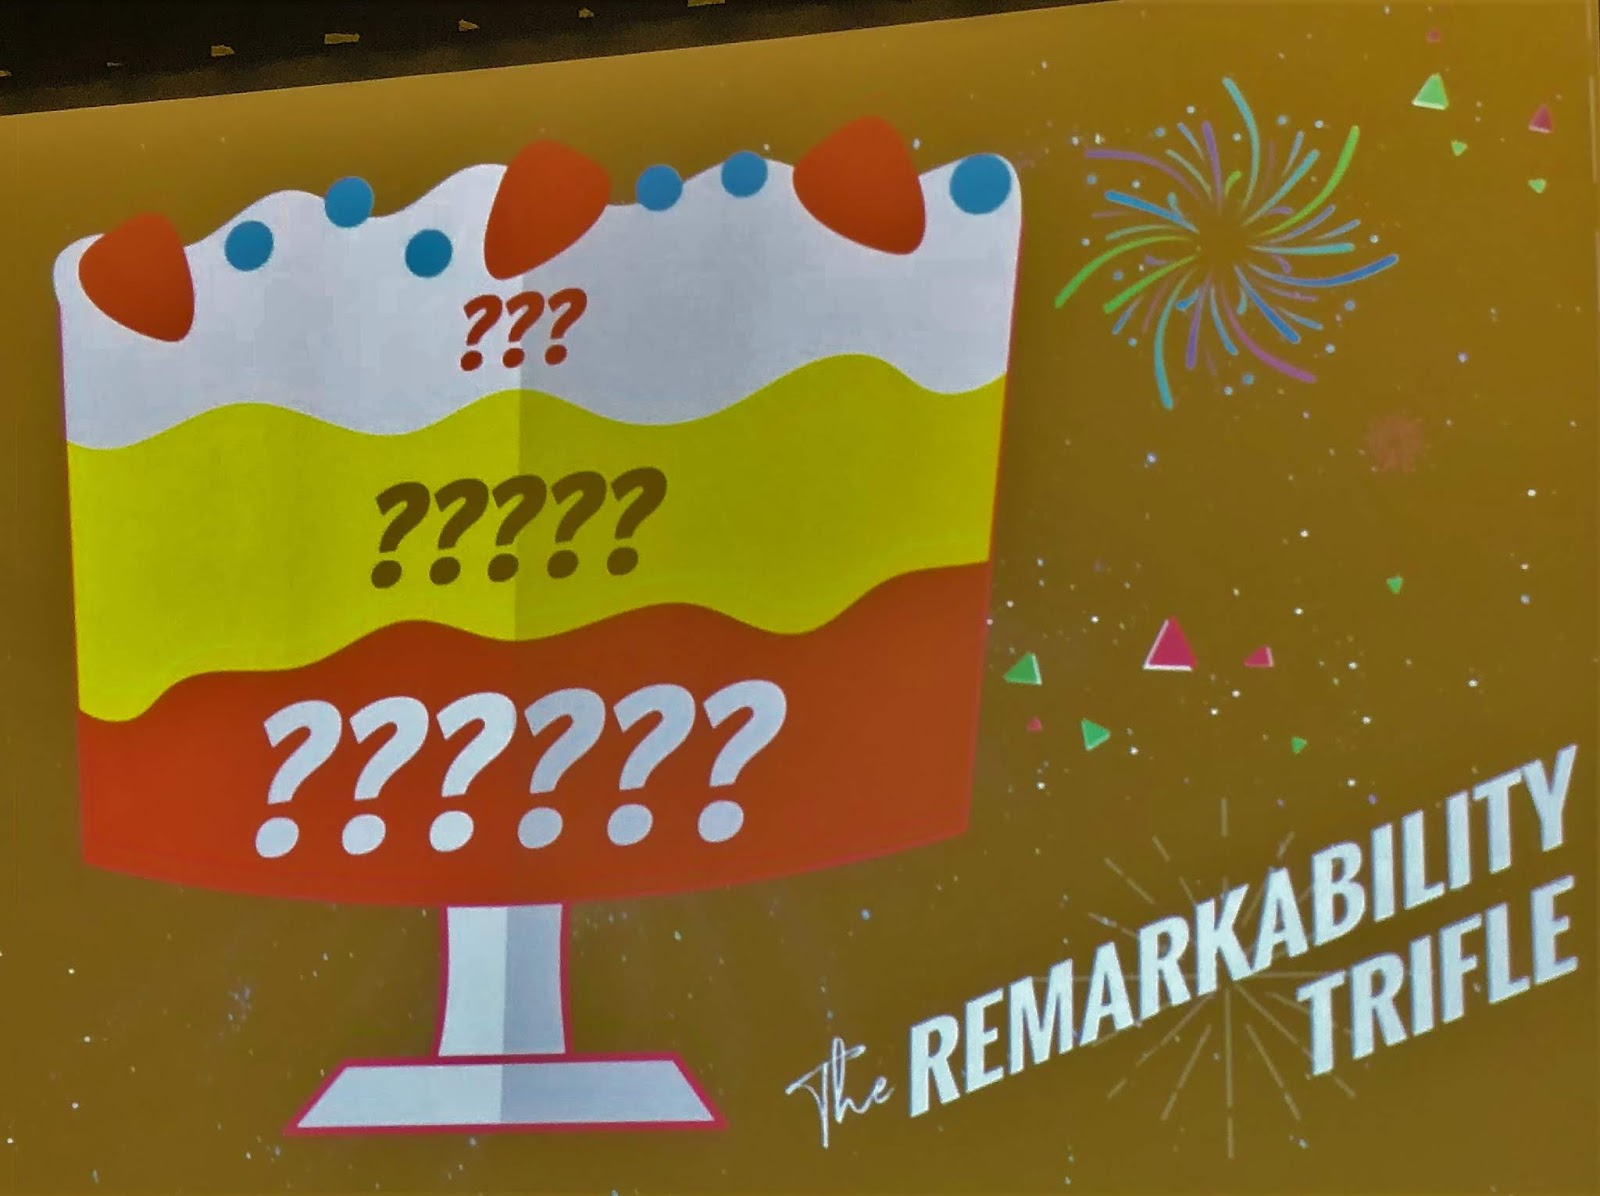 Andrew and Pete's Remarkability Trifle at Content Marketing World 2018